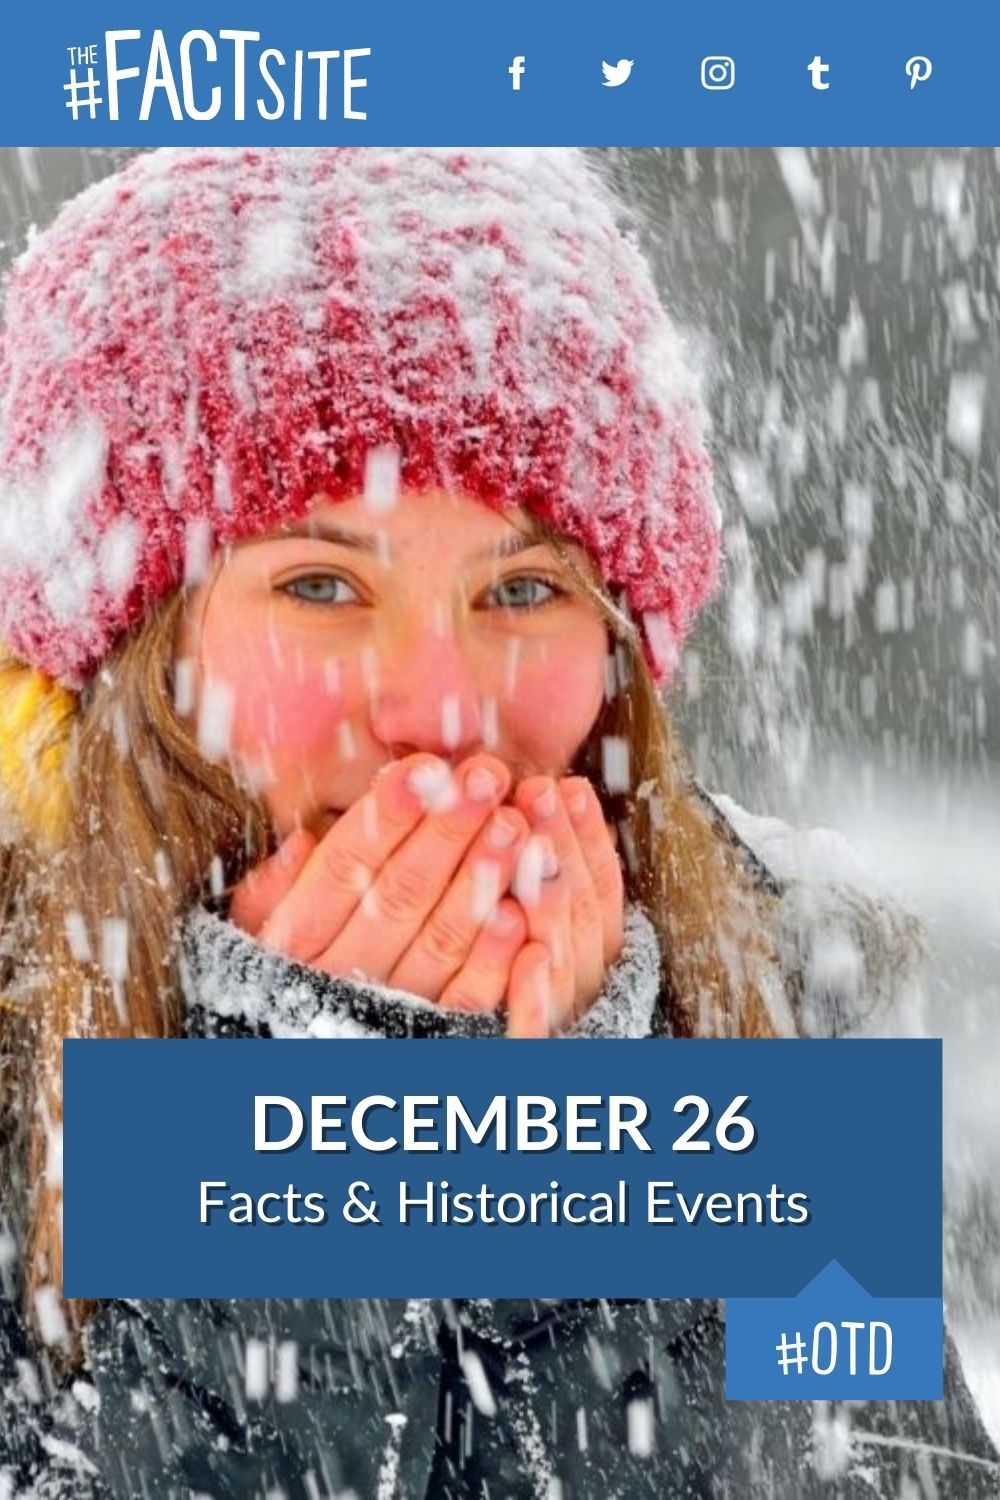 Facts & Historic Events That Happened on December 26